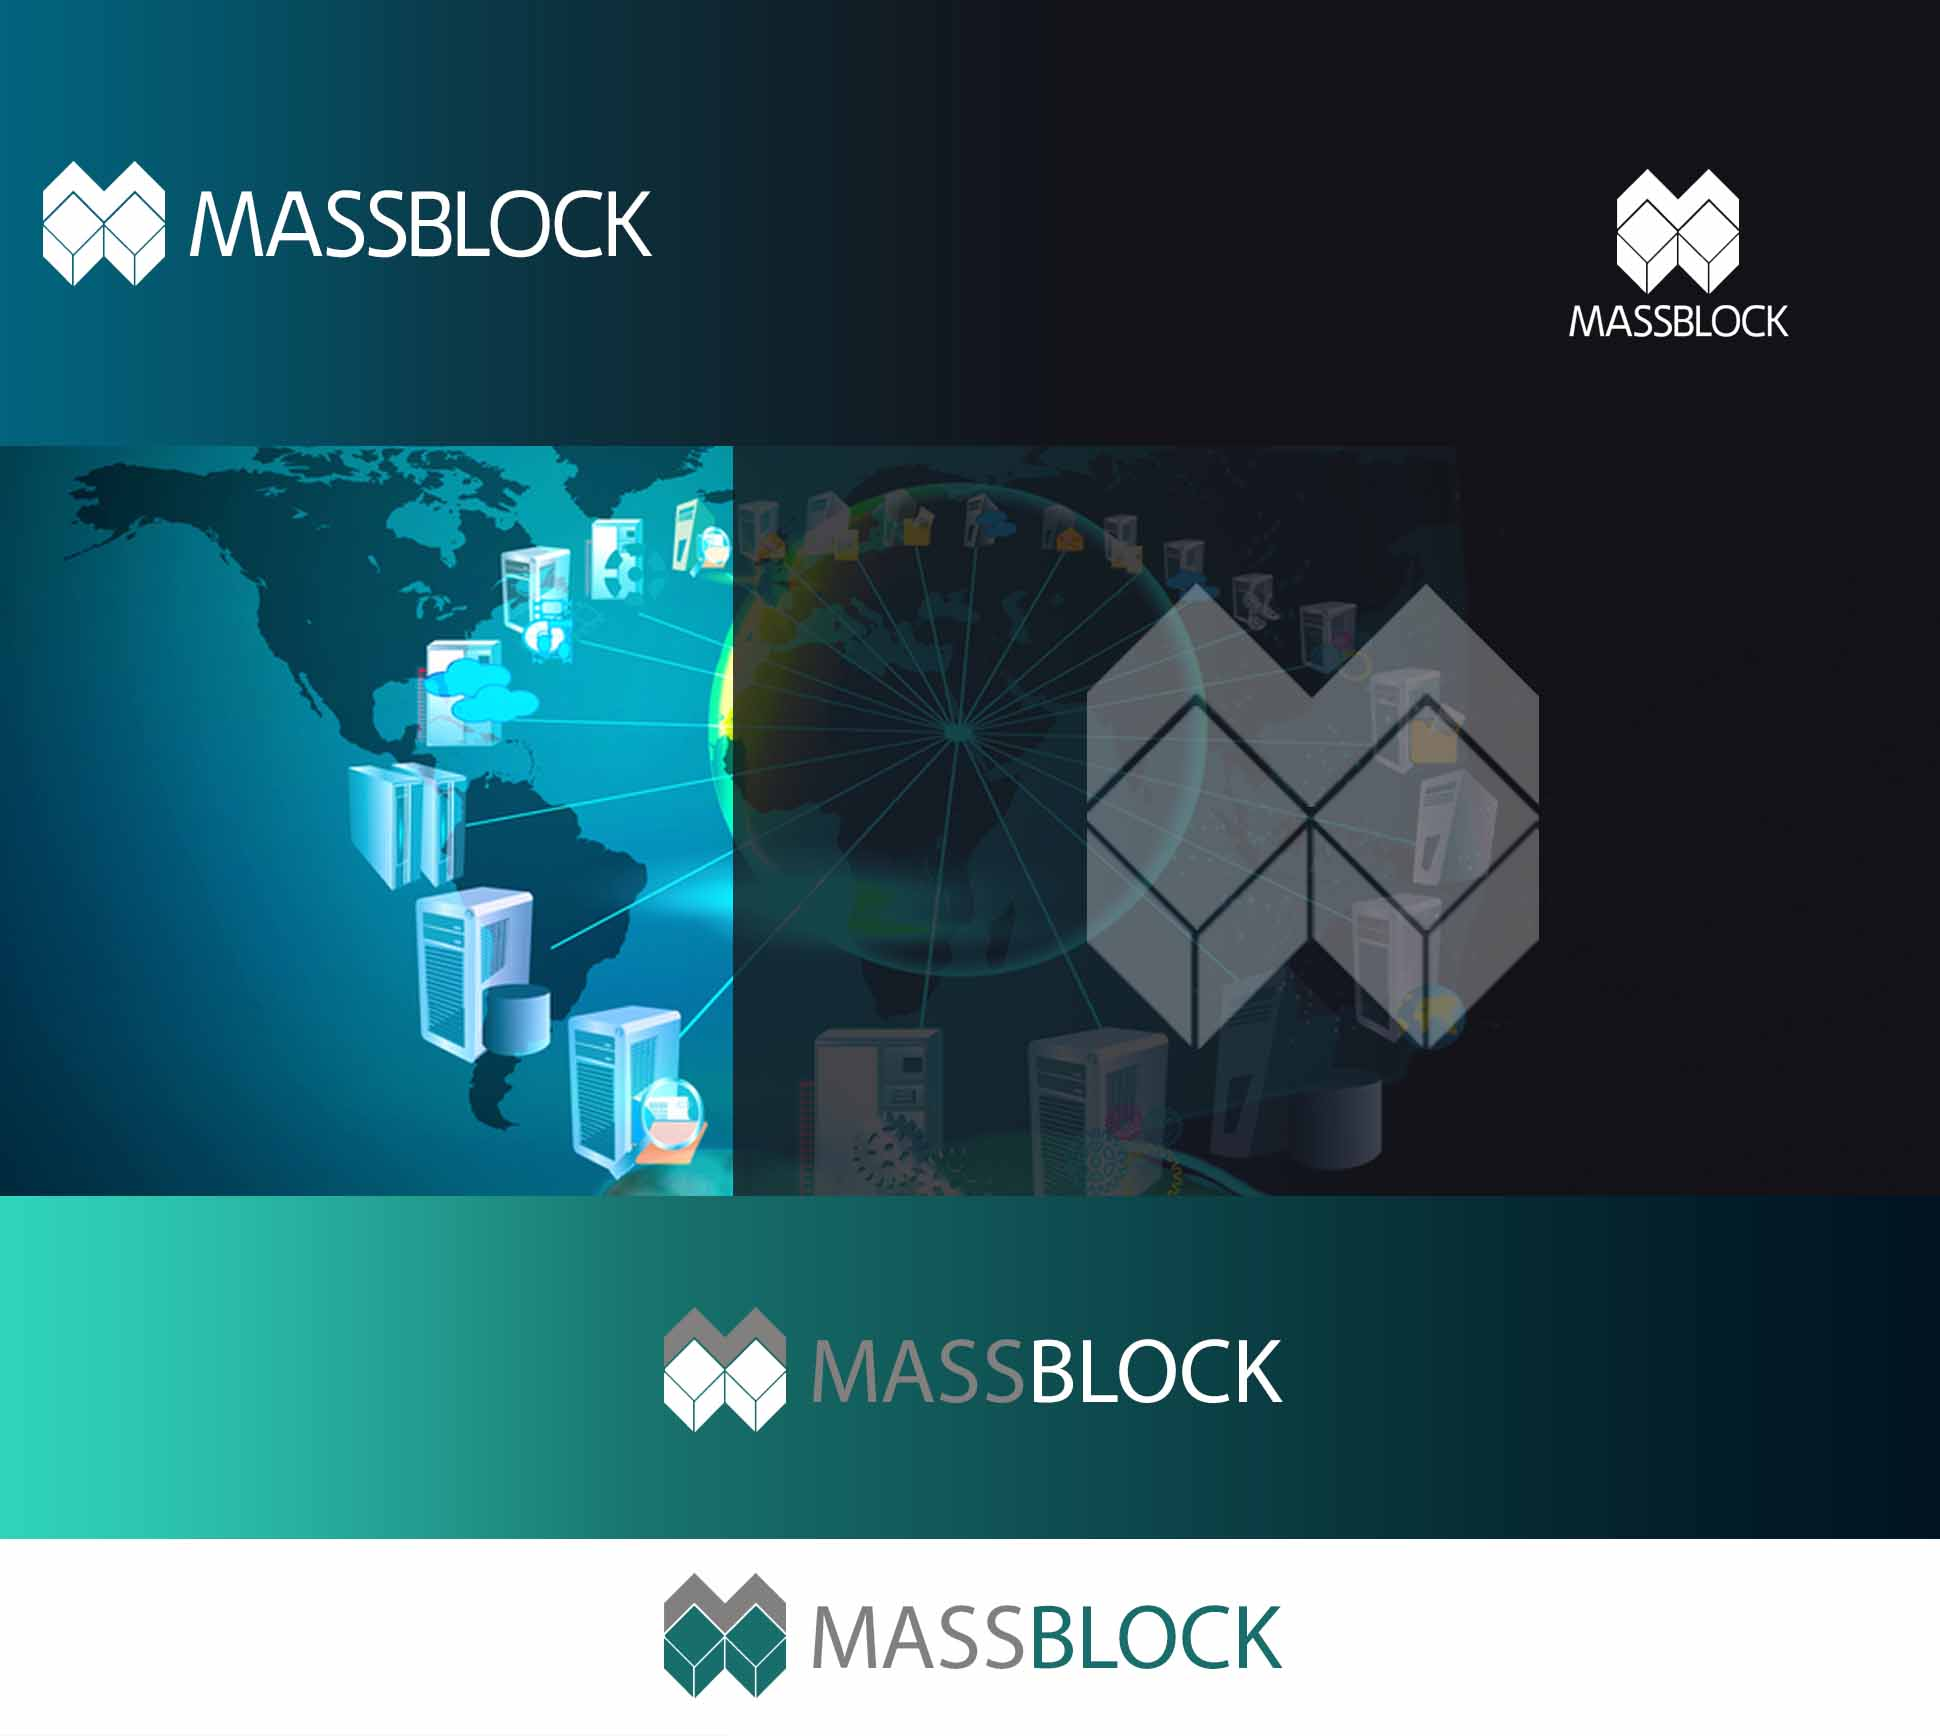 Logo Design by JSDESIGNGROUP - Entry No. 164 in the Logo Design Contest Fun Logo Design for Massblock.